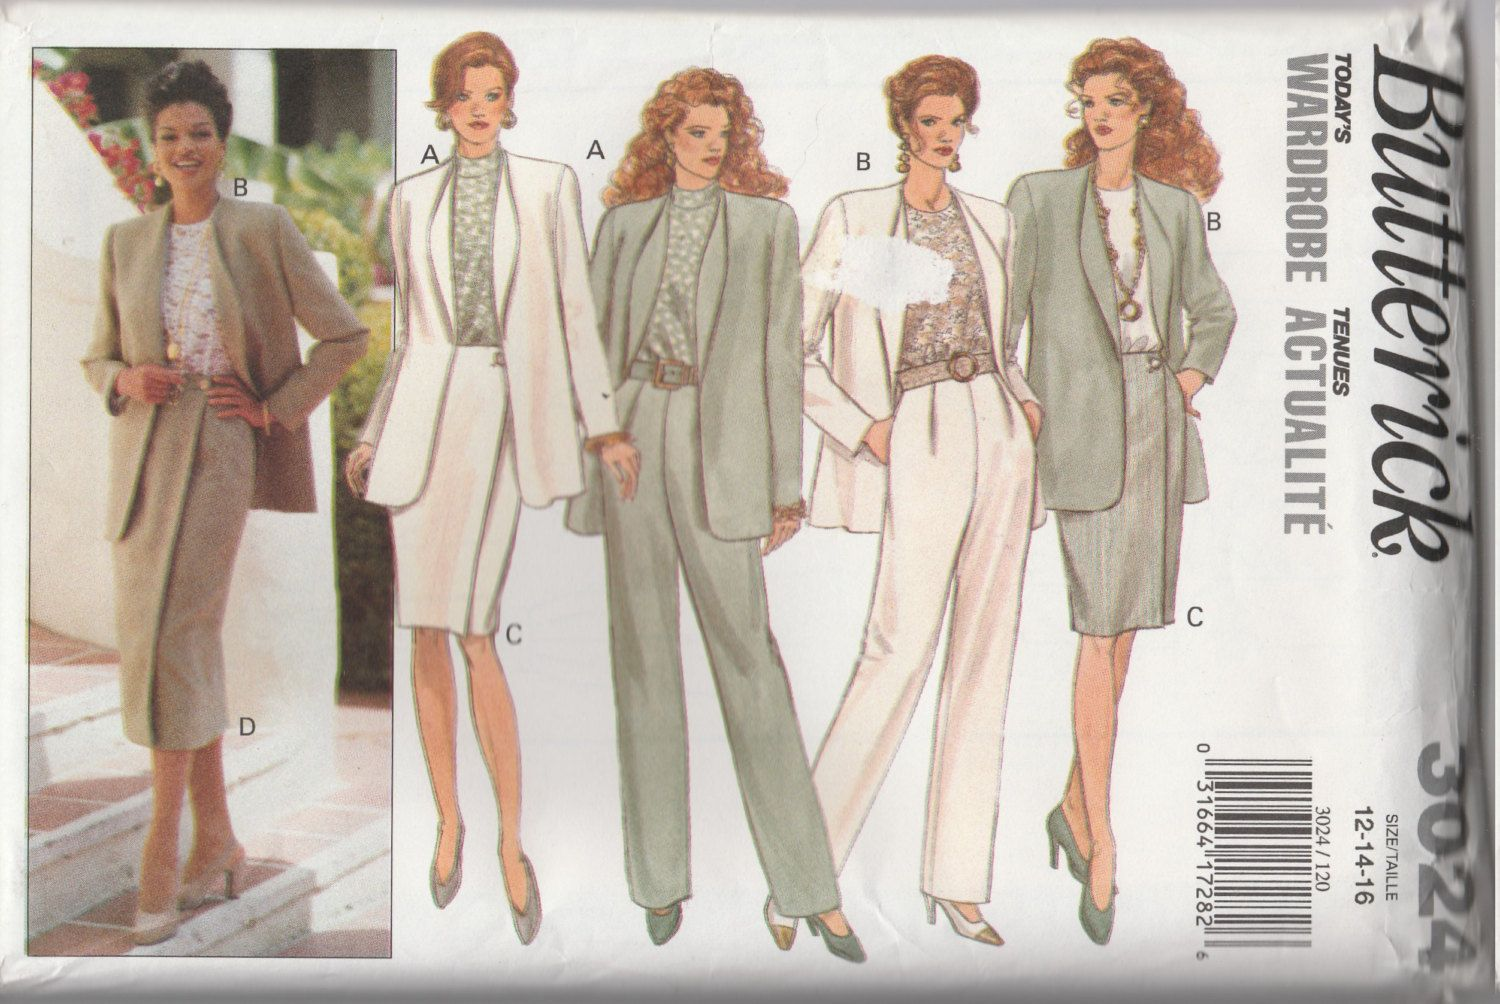 Butterick 3024 Size 12-14-16 Misses' Jacket, Top, Skirt & Pants Sewing Pattern 1993 Uncut by LadybugsandScorpions on Etsy